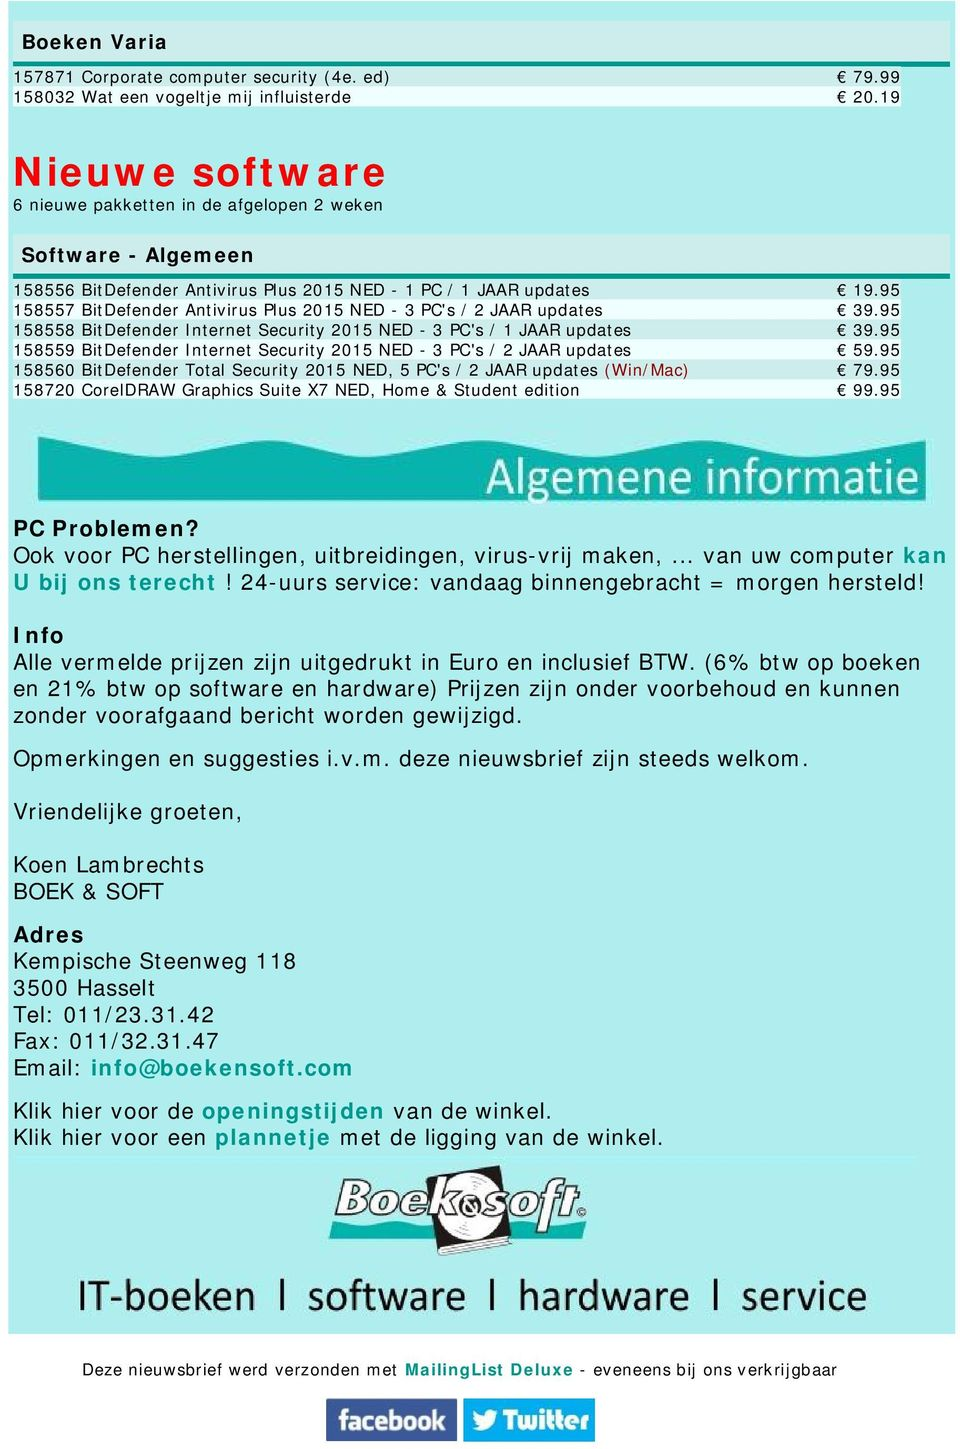 95 158557 BitDefender Antivirus Plus 2015 NED - 3 PC's / 2 JAAR updates 39.95 158558 BitDefender Internet Security 2015 NED - 3 PC's / 1 JAAR updates 39.